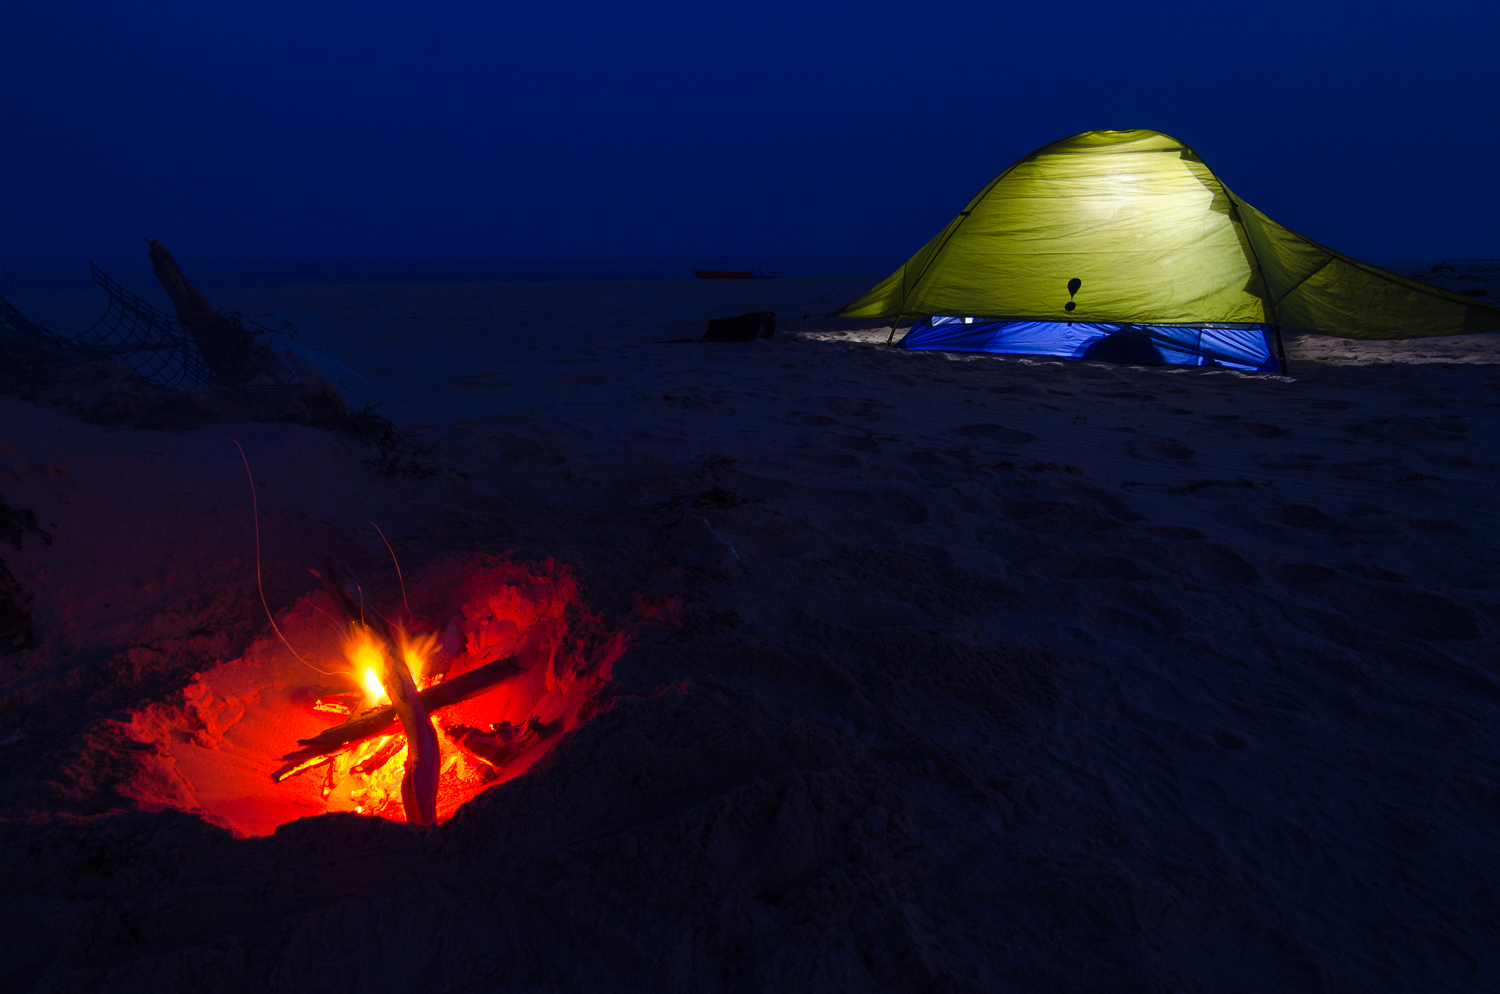 A Night at the Beach